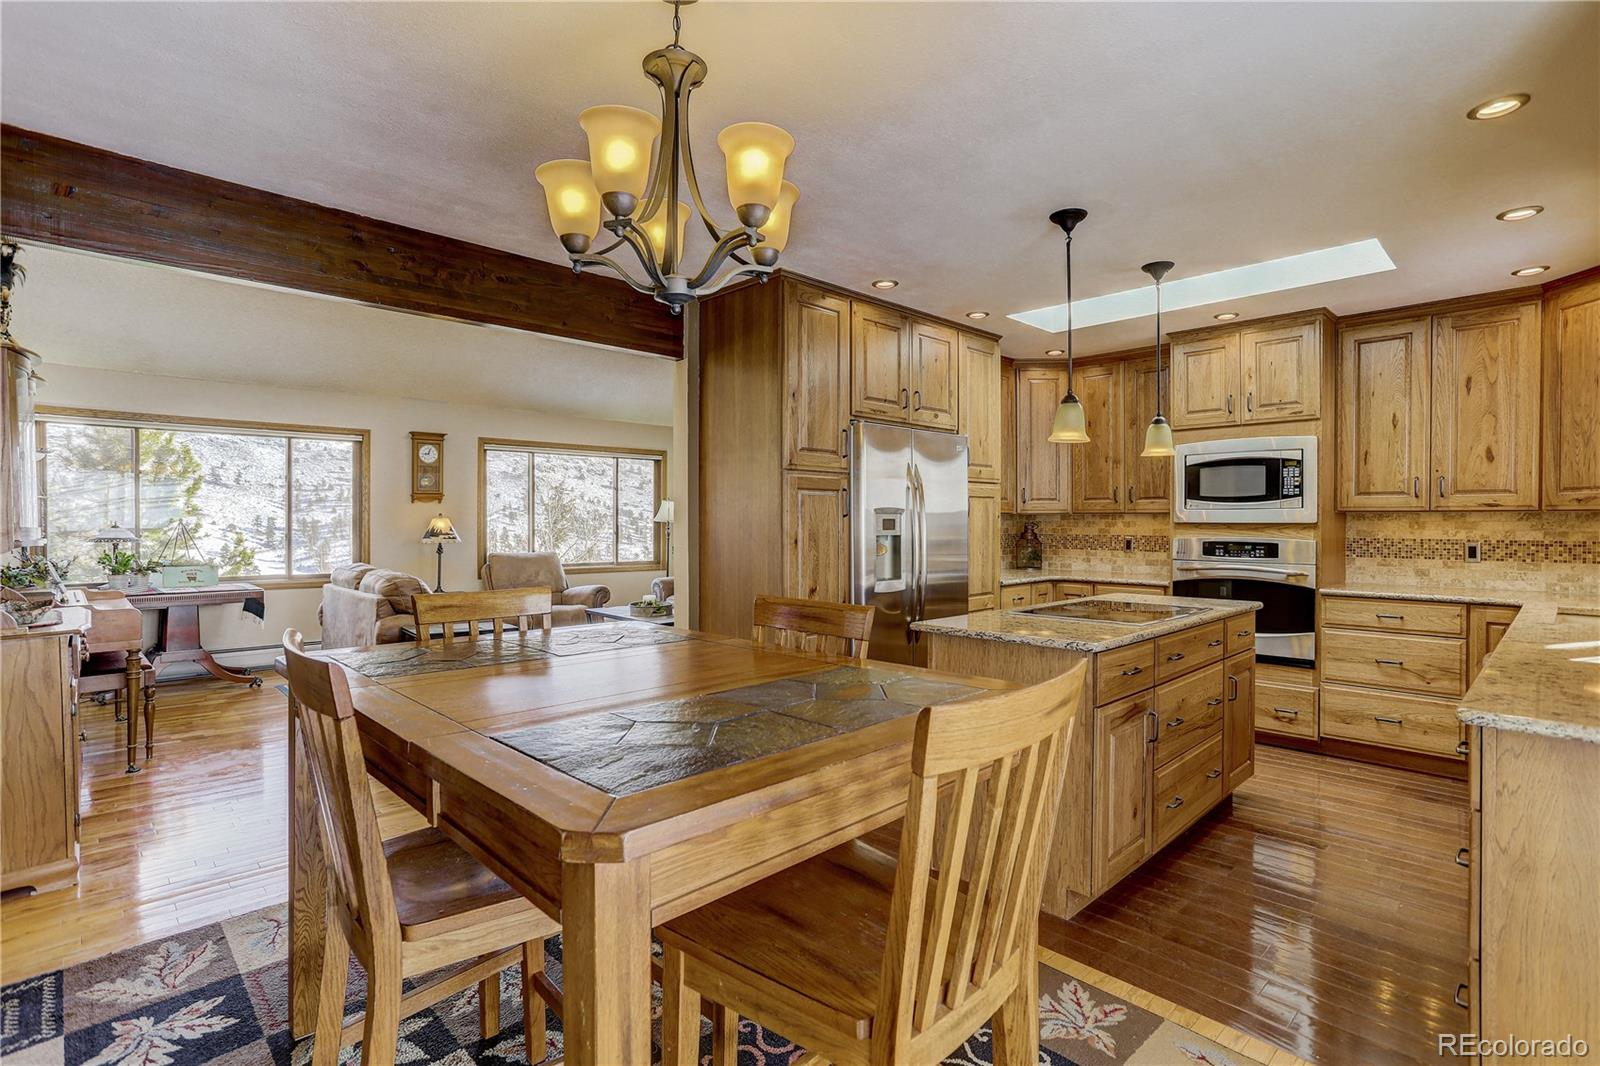 684 Hyland Drive, Evergreen, CO 80439 - Evergreen, CO real estate listing